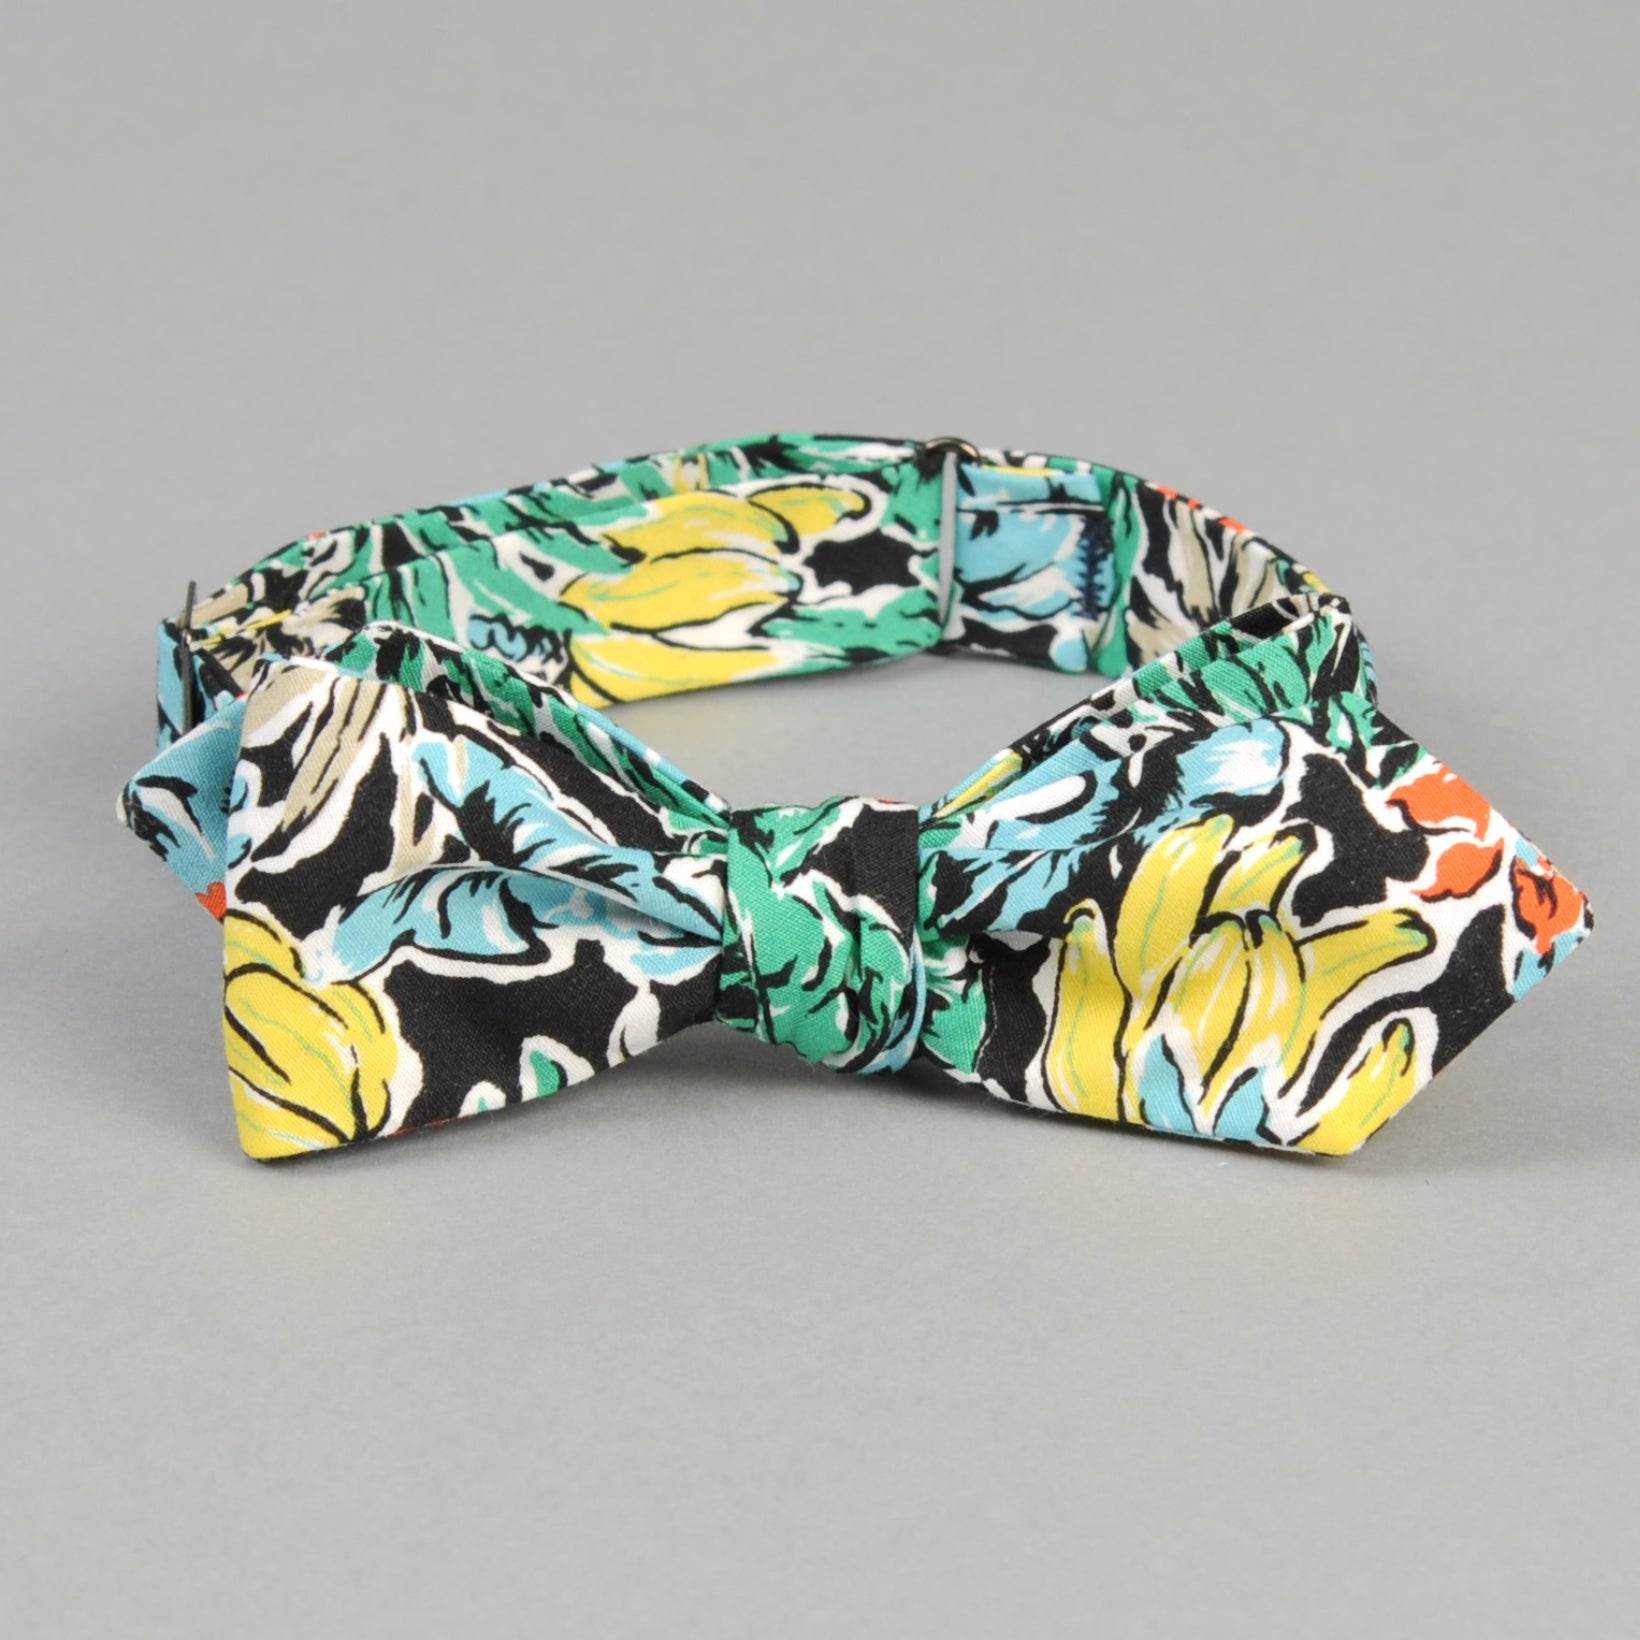 The Hill-Side - Toucans & Bananas Print Bow Tie, Black - BT1-457 - image 1